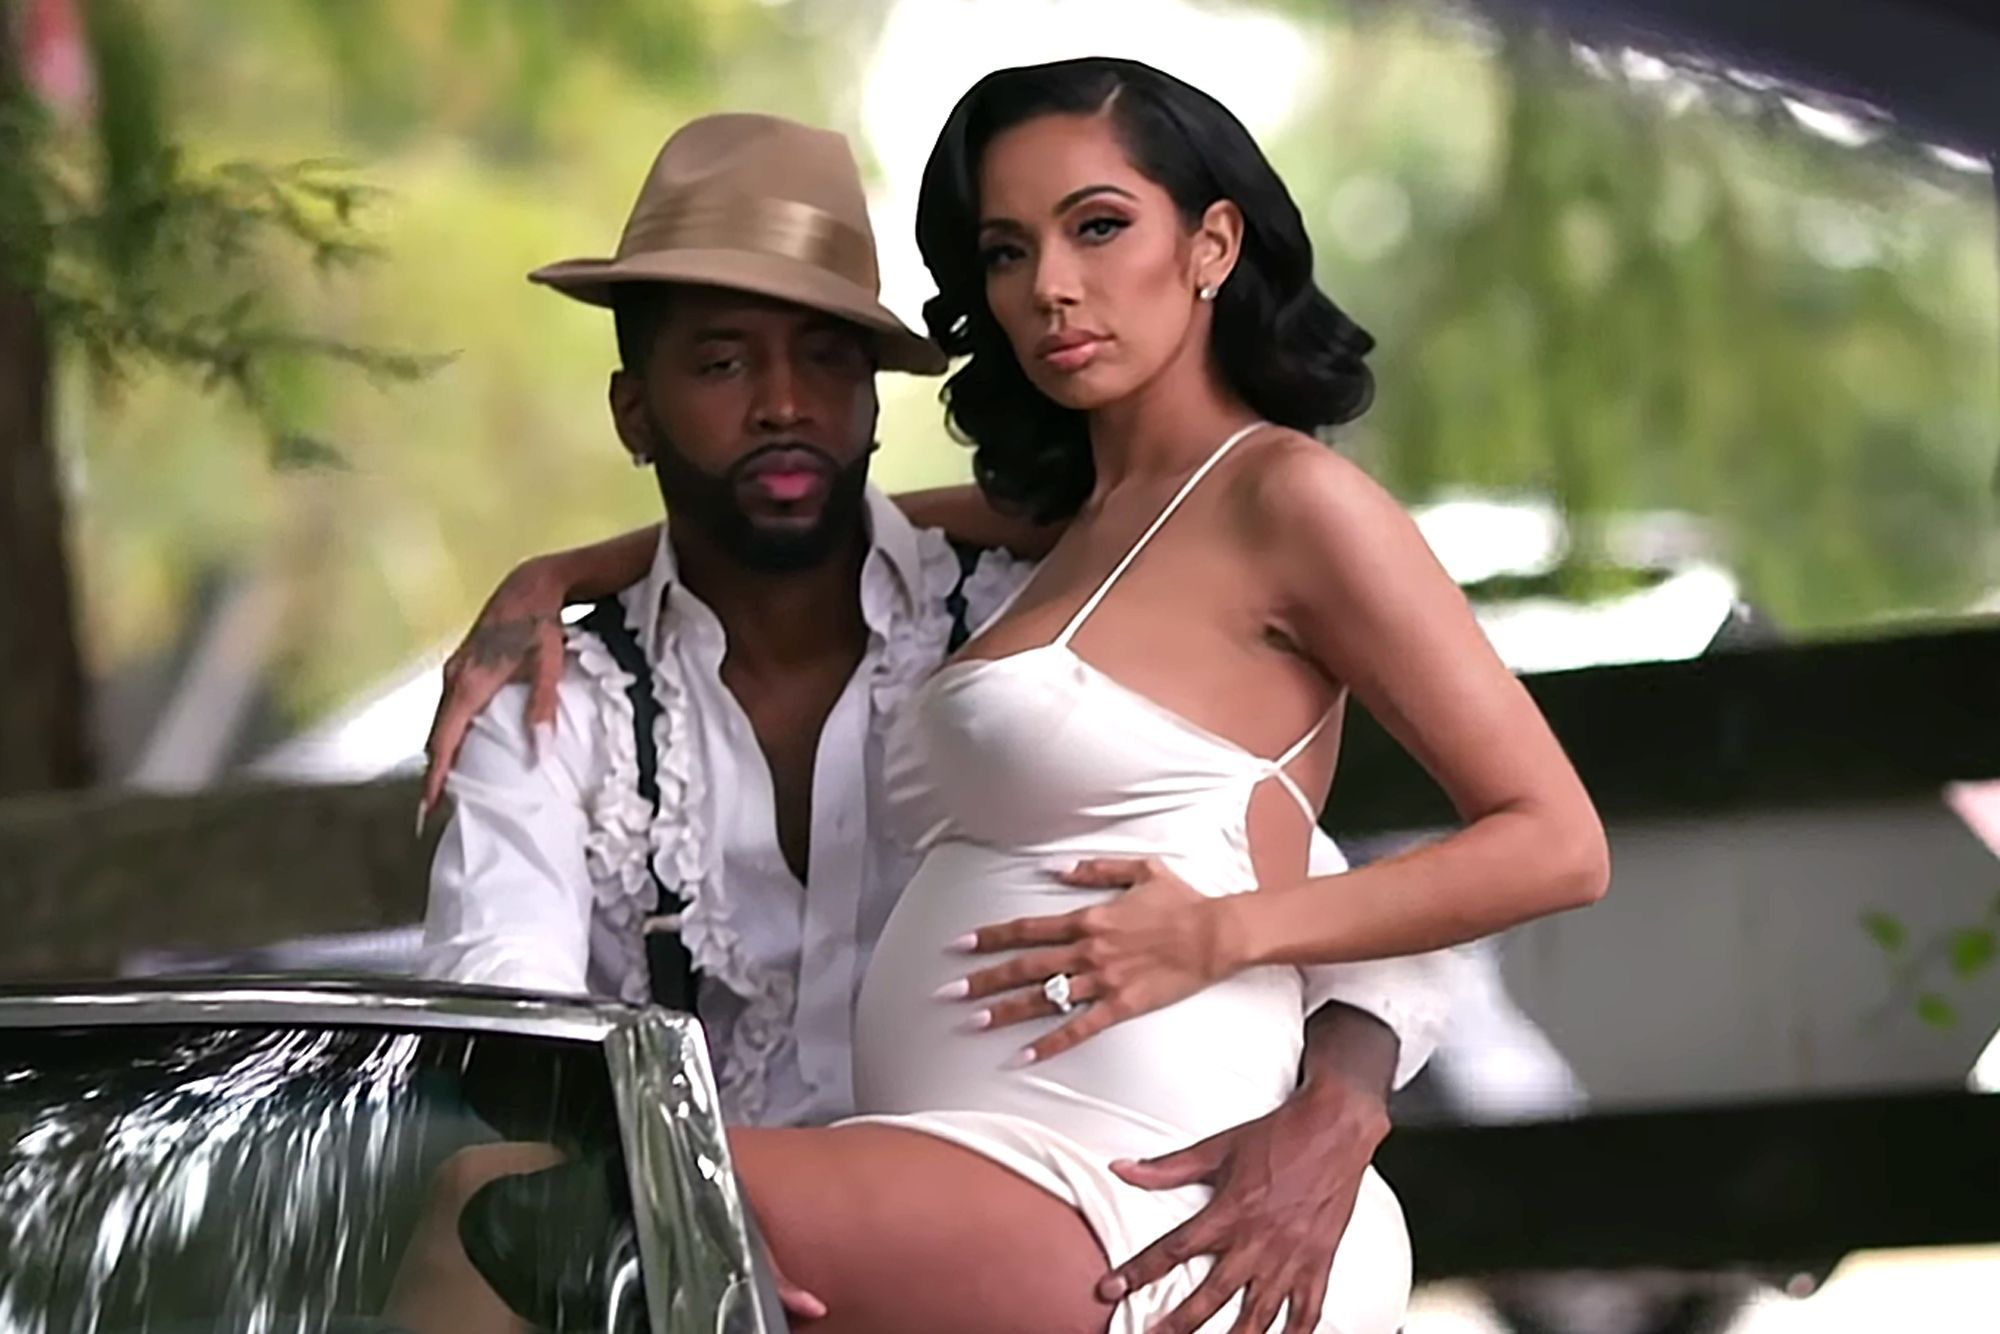 ERICA MENA IN THE HOSPITAL W/ NEWBORN SON AND SAFAREE PARTIES IN JAMAICA, ARE THEY TAKING BREAK?